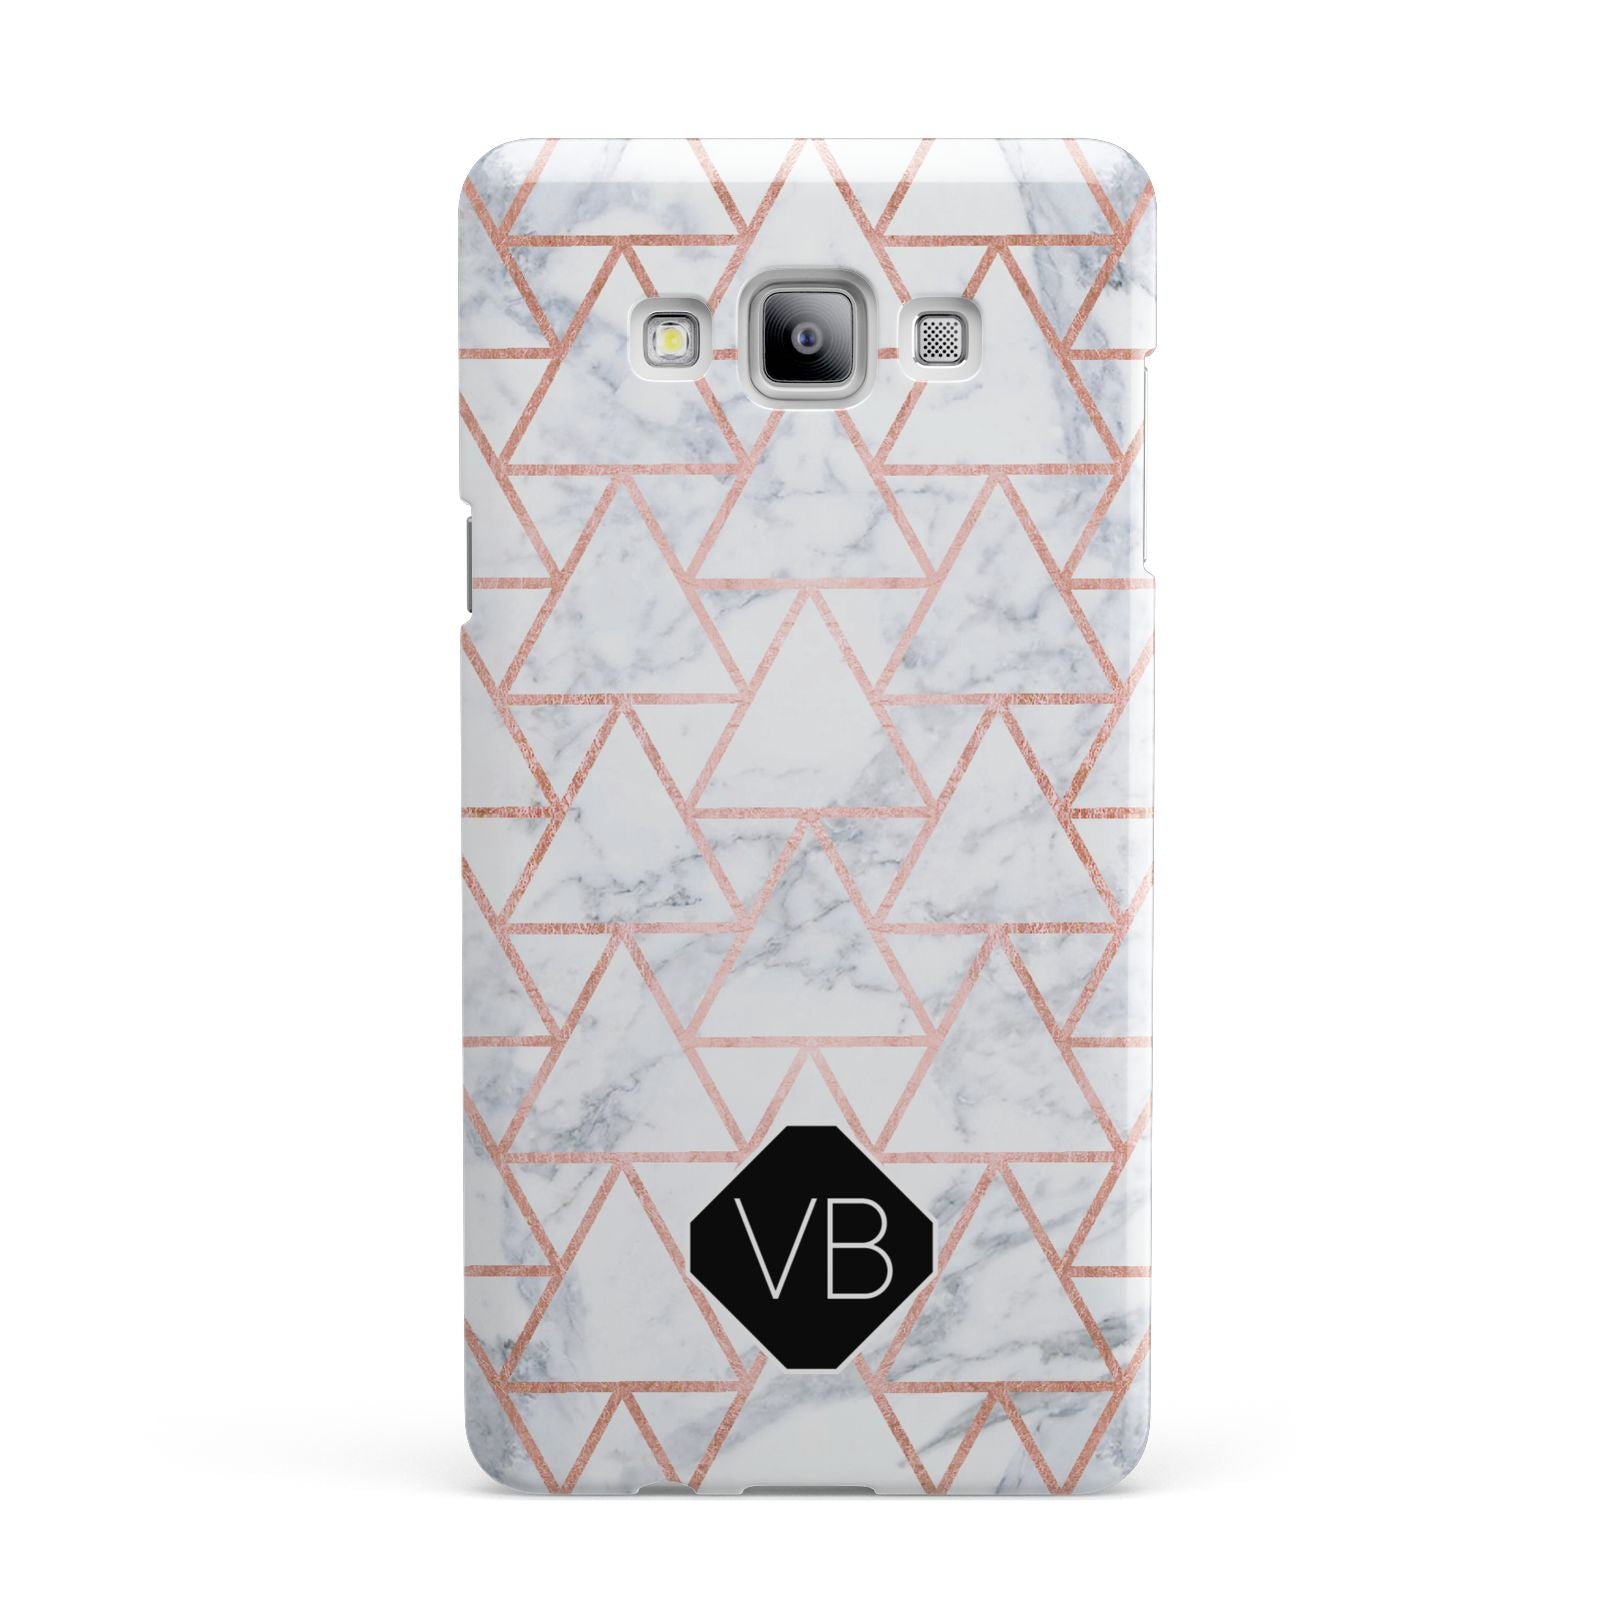 Personalised Rose Gold Grey Marble Hexagon Samsung Galaxy A7 2015 Case